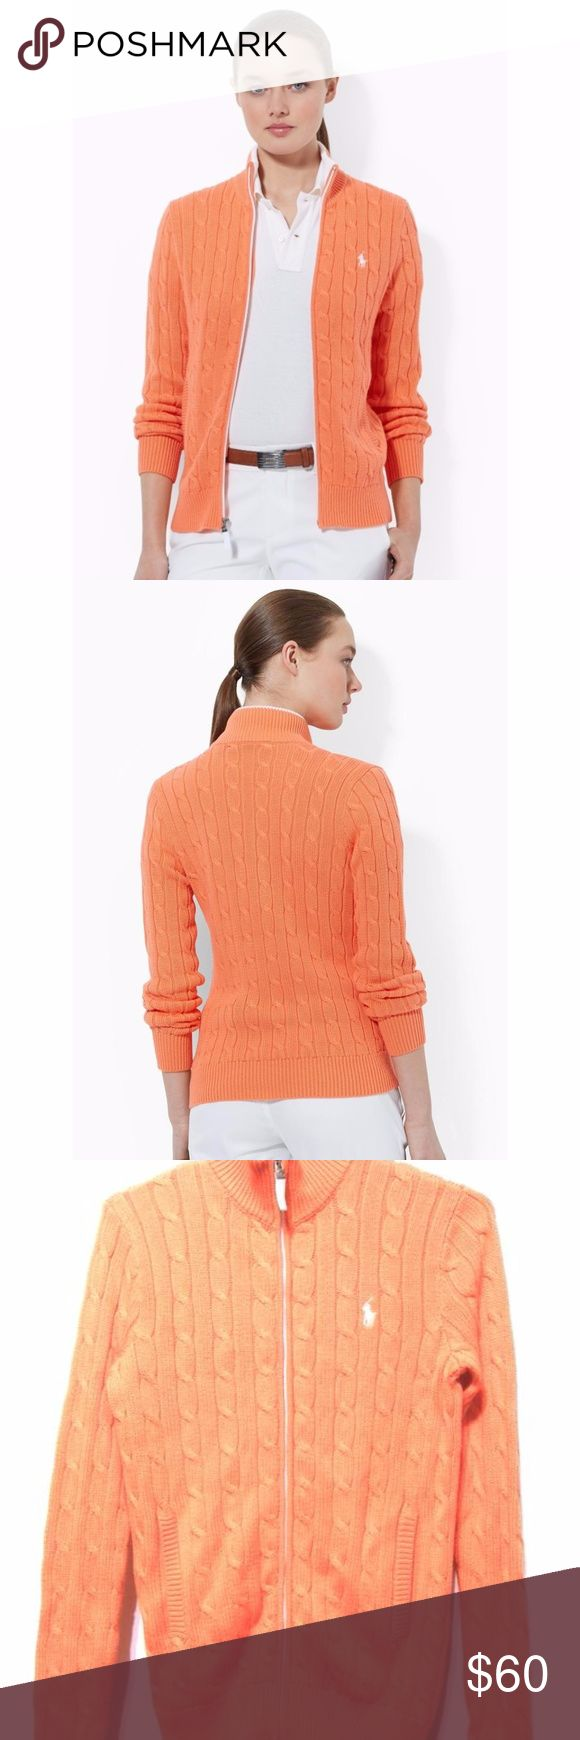 Ralph Lauren cable knit sweater jacket cardigan Ralph Lauren Golf Women's Orange Cable-knit Zip-up Sweater, 100% cotton. Size small ( US 4-6) In great condition Please refer to the model picture for accurate color. My camera always picture it either too bright or too dull :( Ralph Lauren Sweaters Cardigans